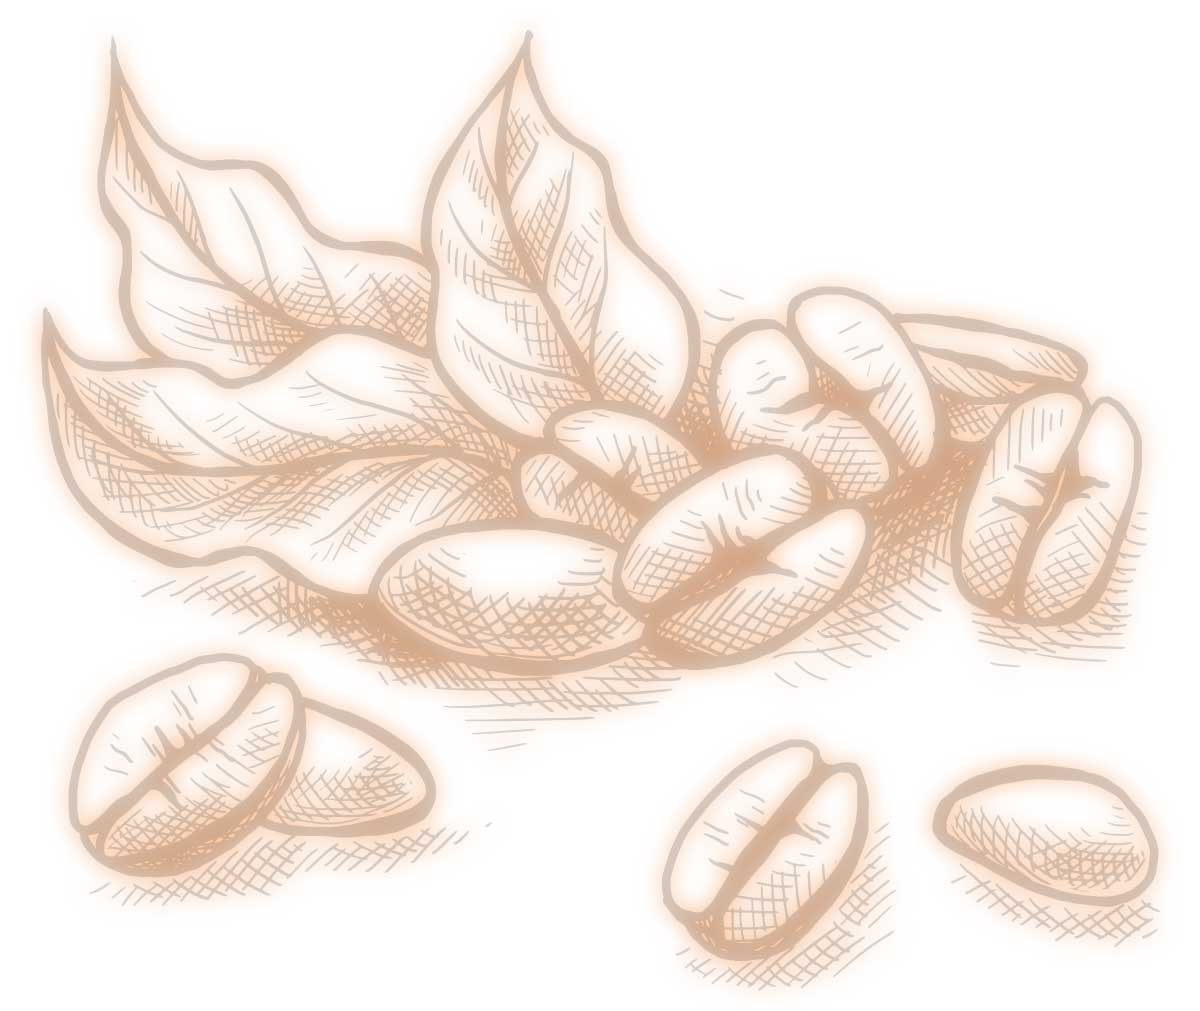 Illustration of Coffee Beans and Leaves